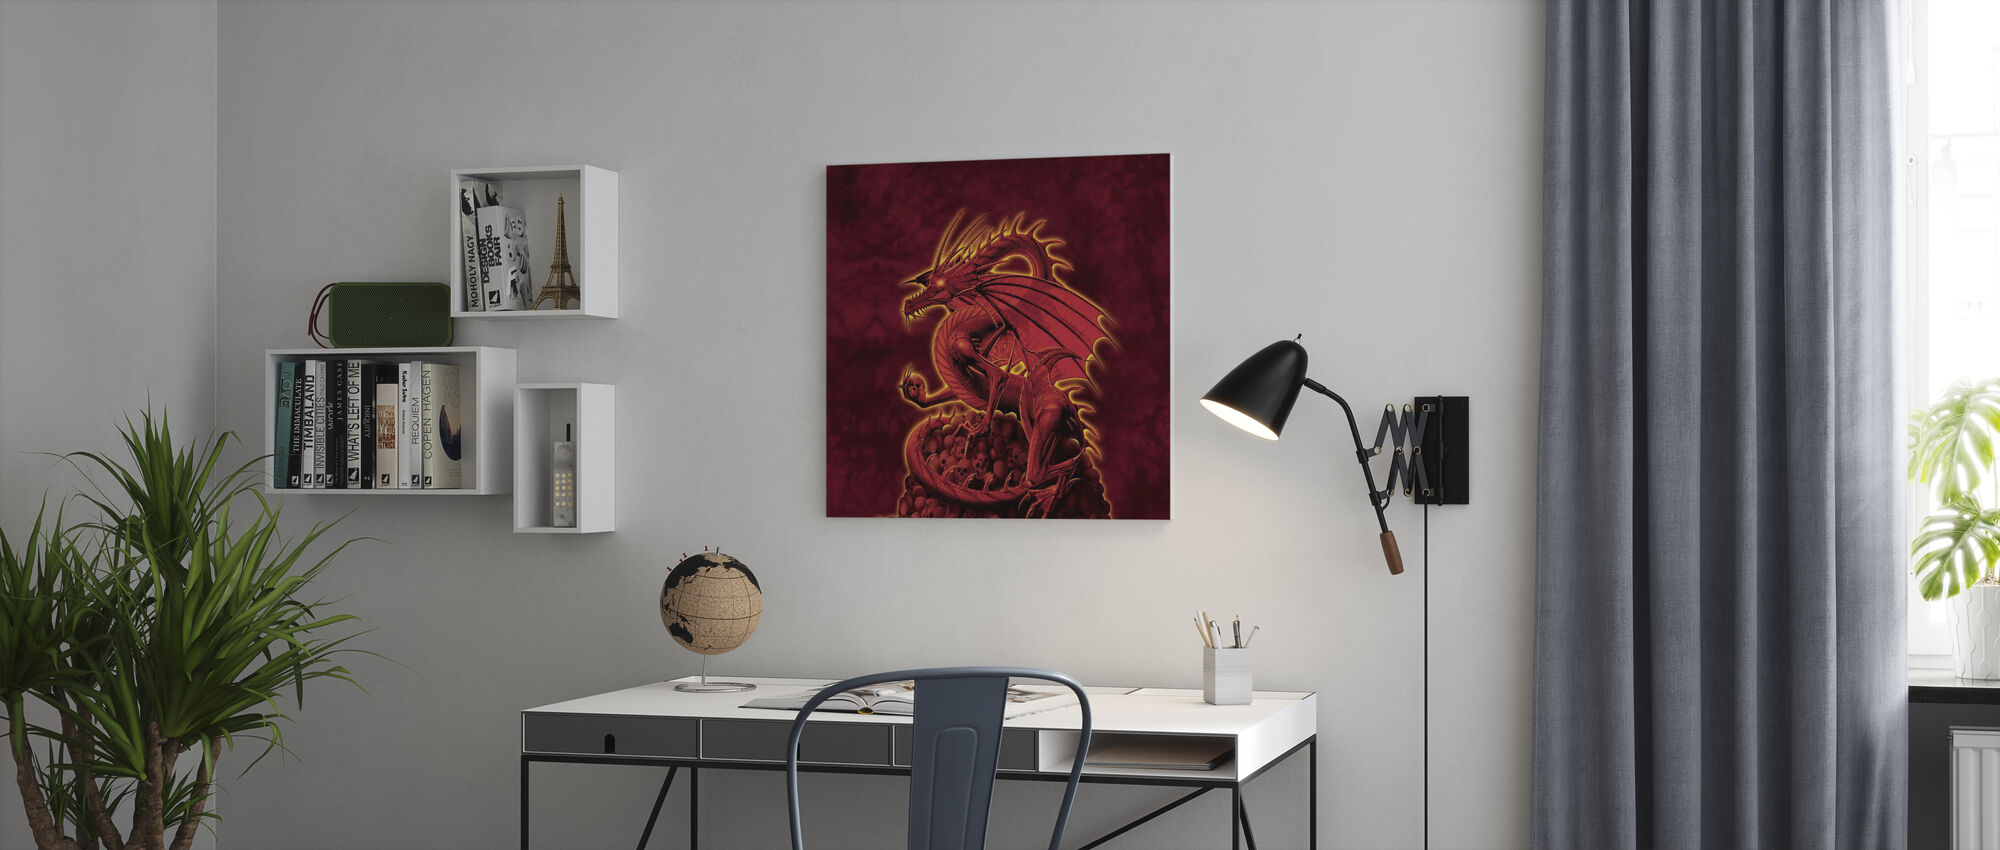 Abolisher Red Version - Canvas print - Office